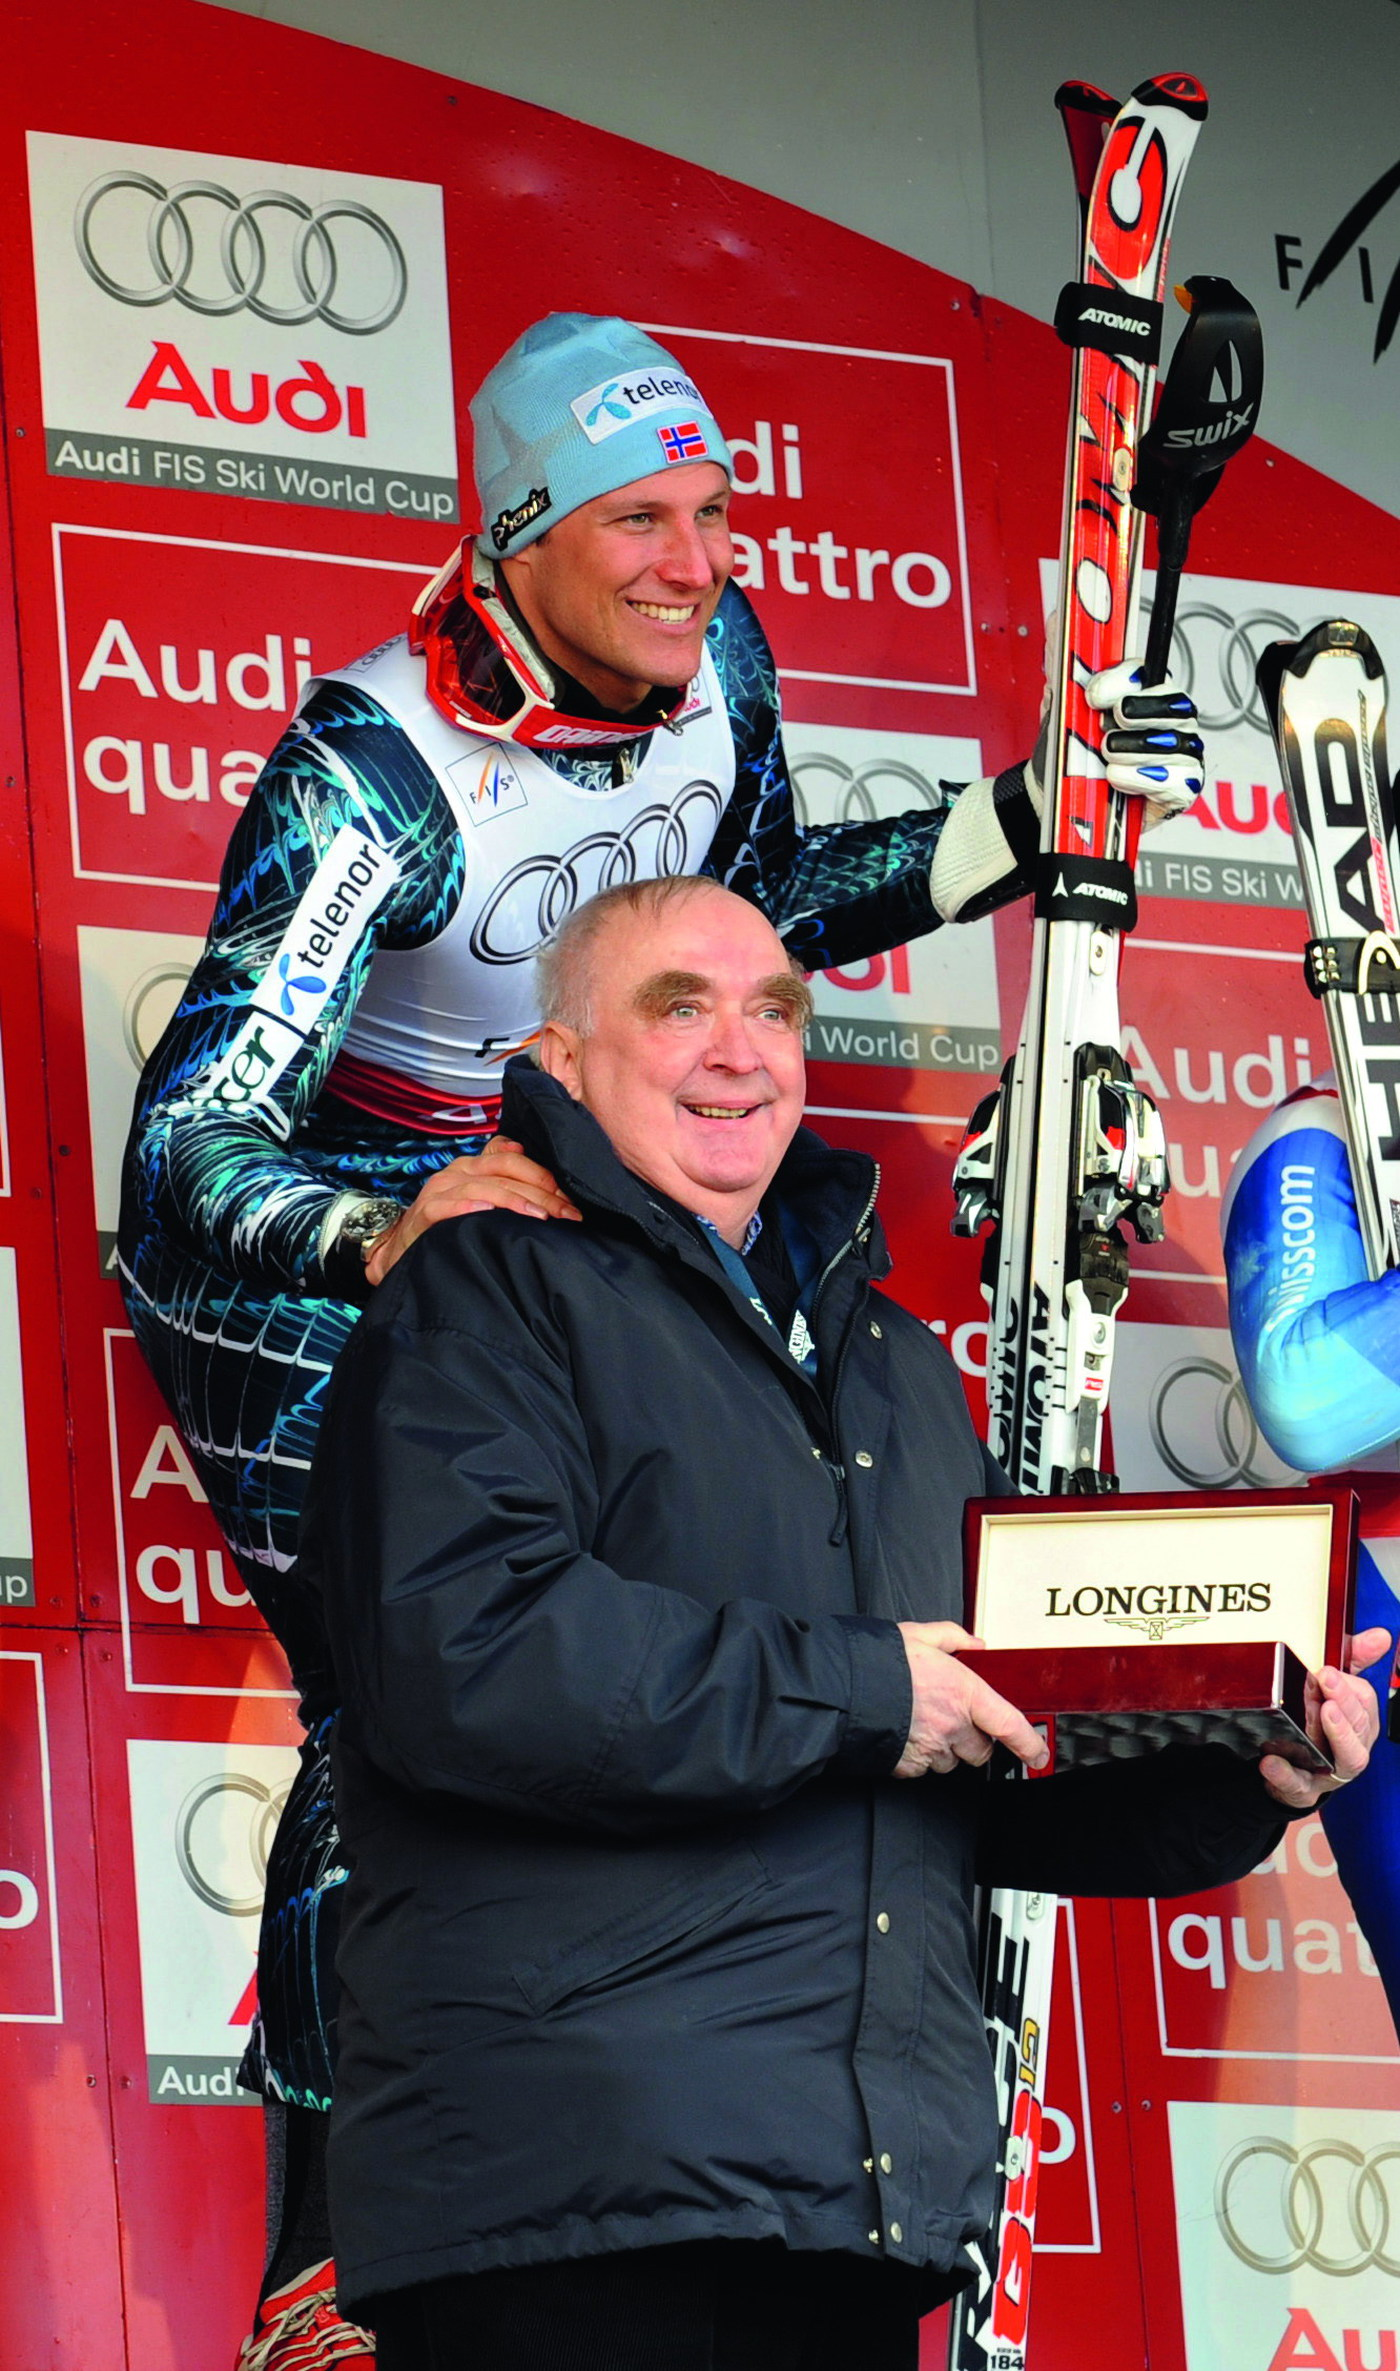 Longines Alpine Skiing Event: Longines and alpine skiing – a successful partnership continues 6